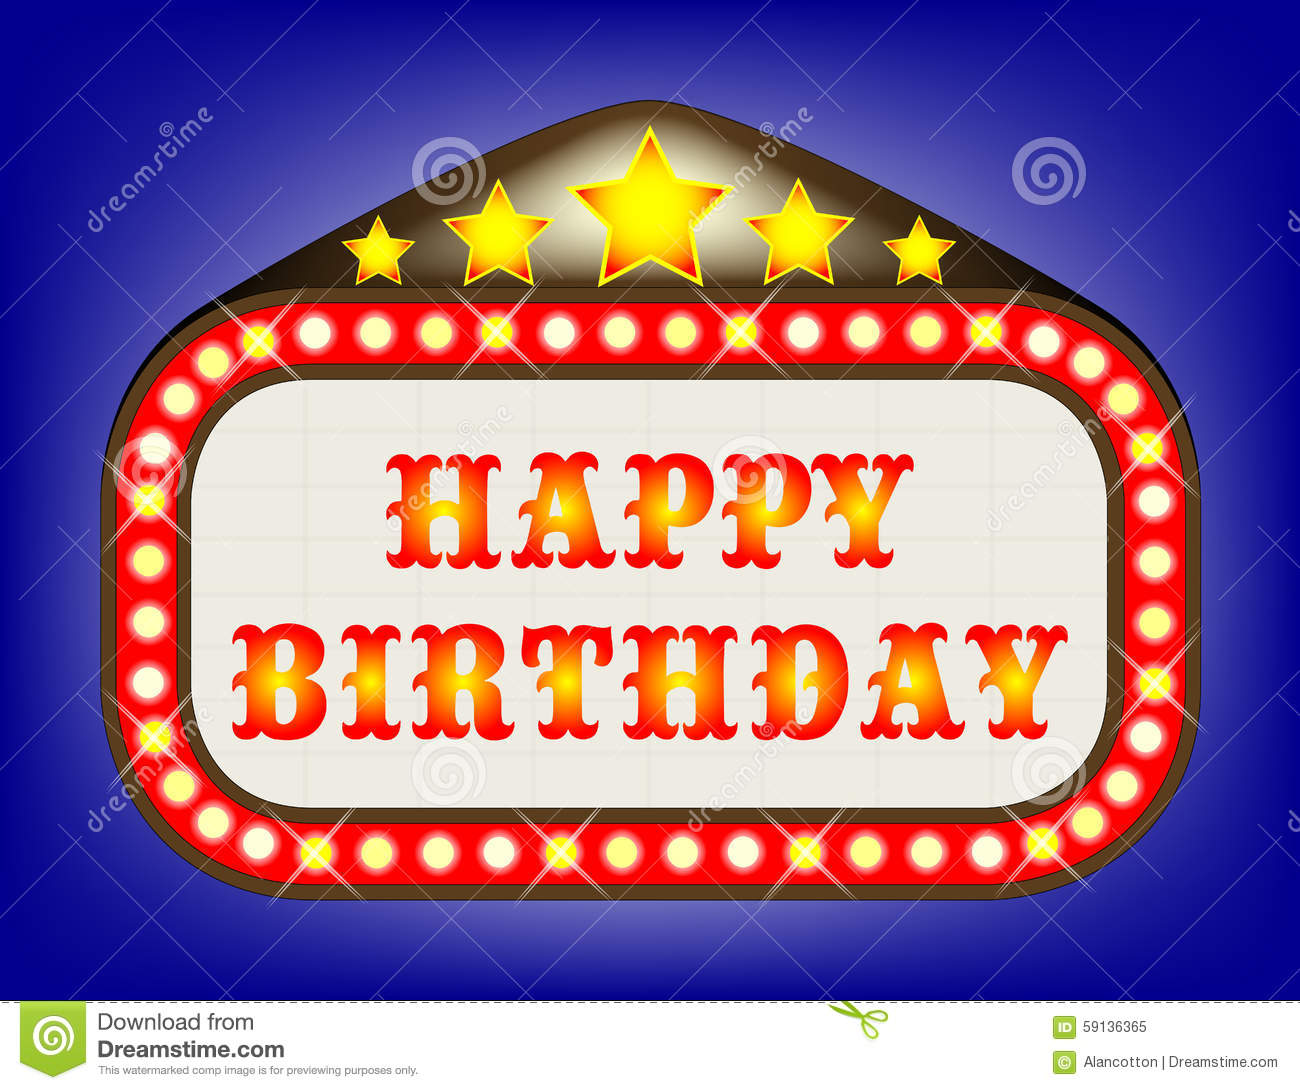 happy birthday movie theatre marquee stock illustration movie marquee clip art for word documents movie marquee clip art black white